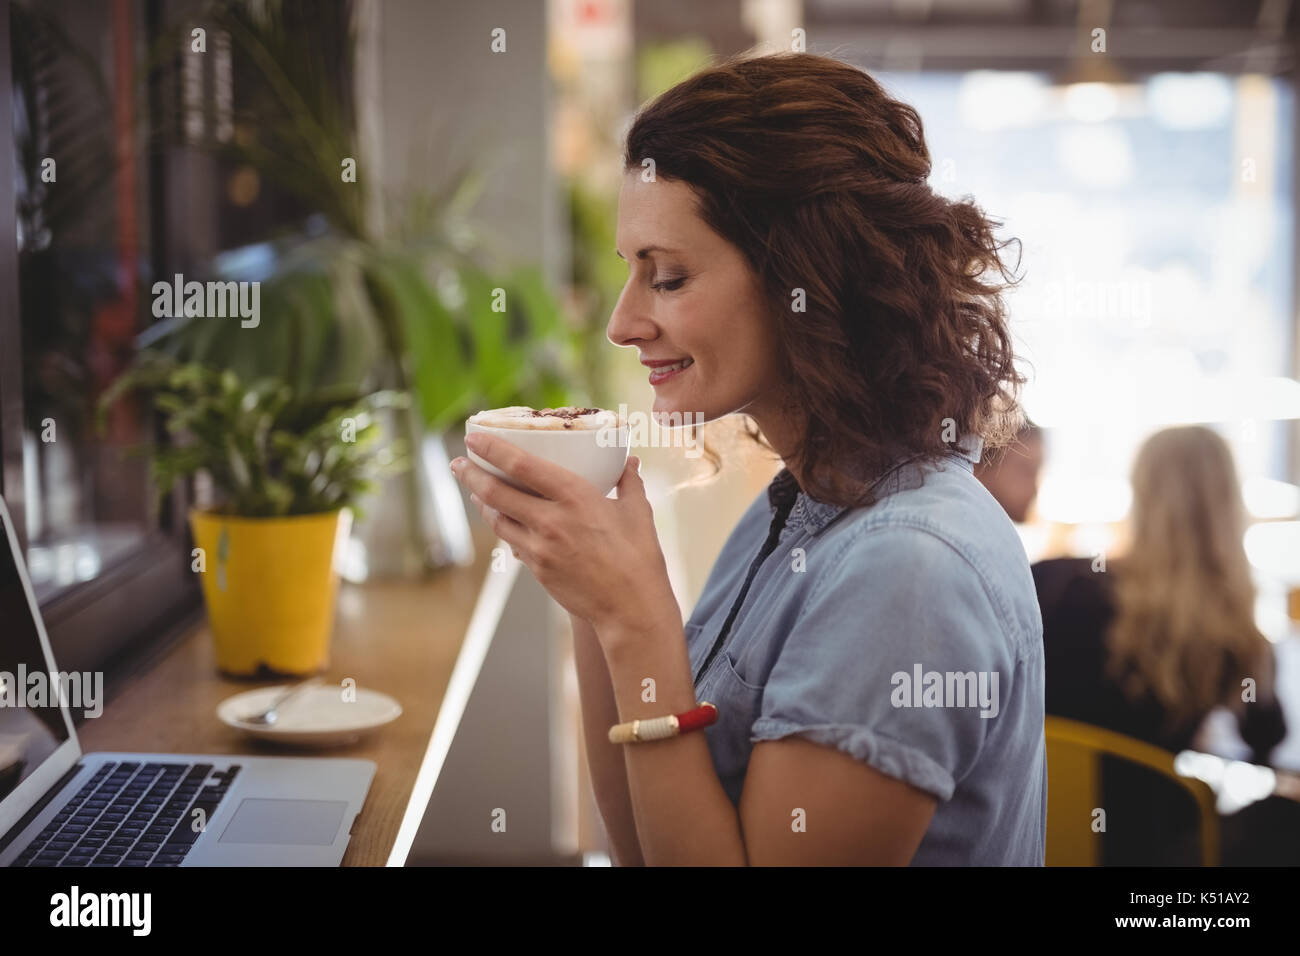 Side view of young woman smelling coffee while sitting at cafe - Stock Image